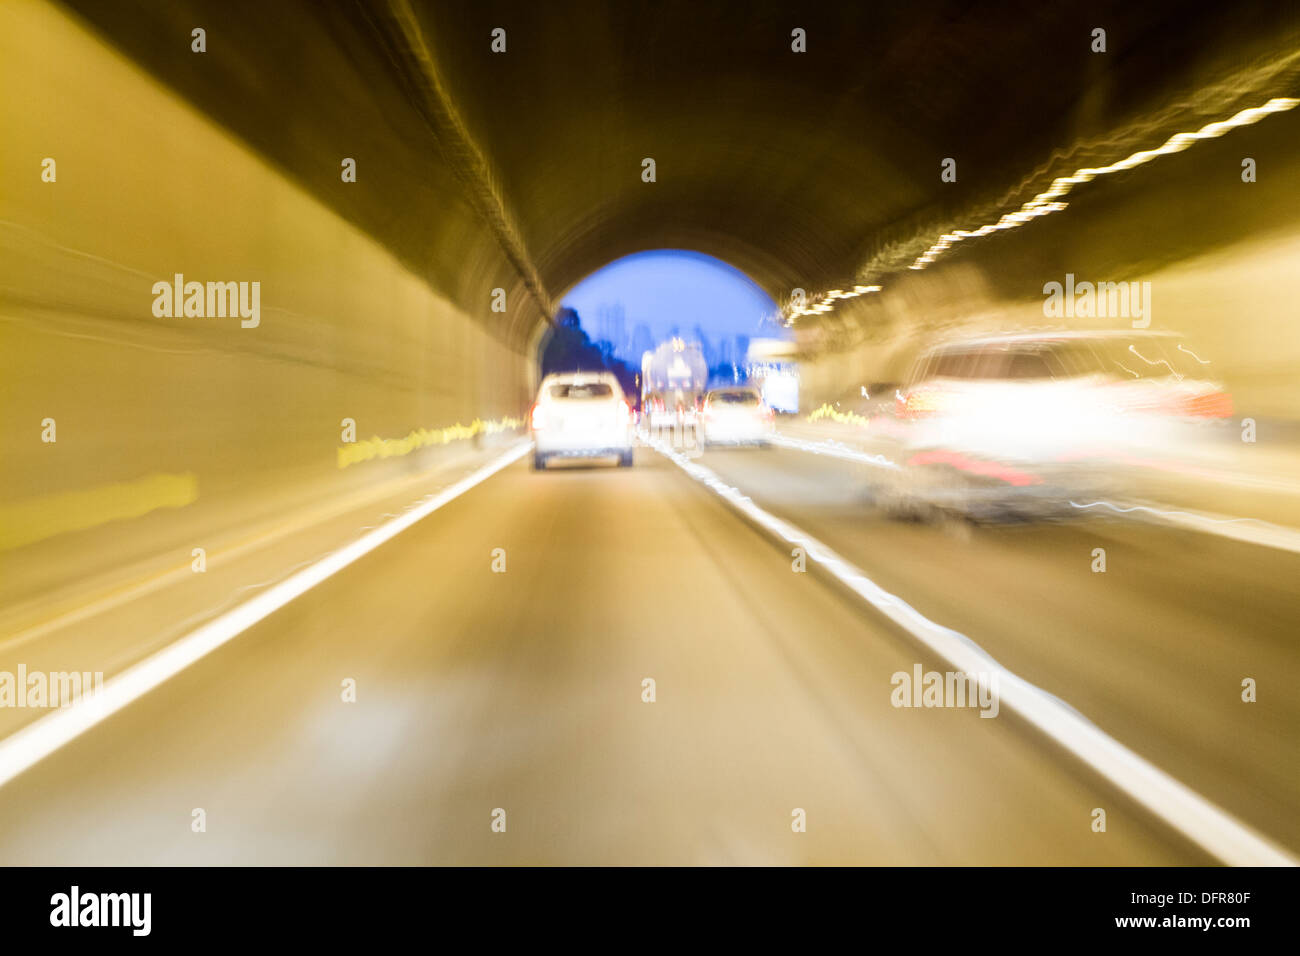 Blurred motion on a road tunnel at evening. - Stock Image